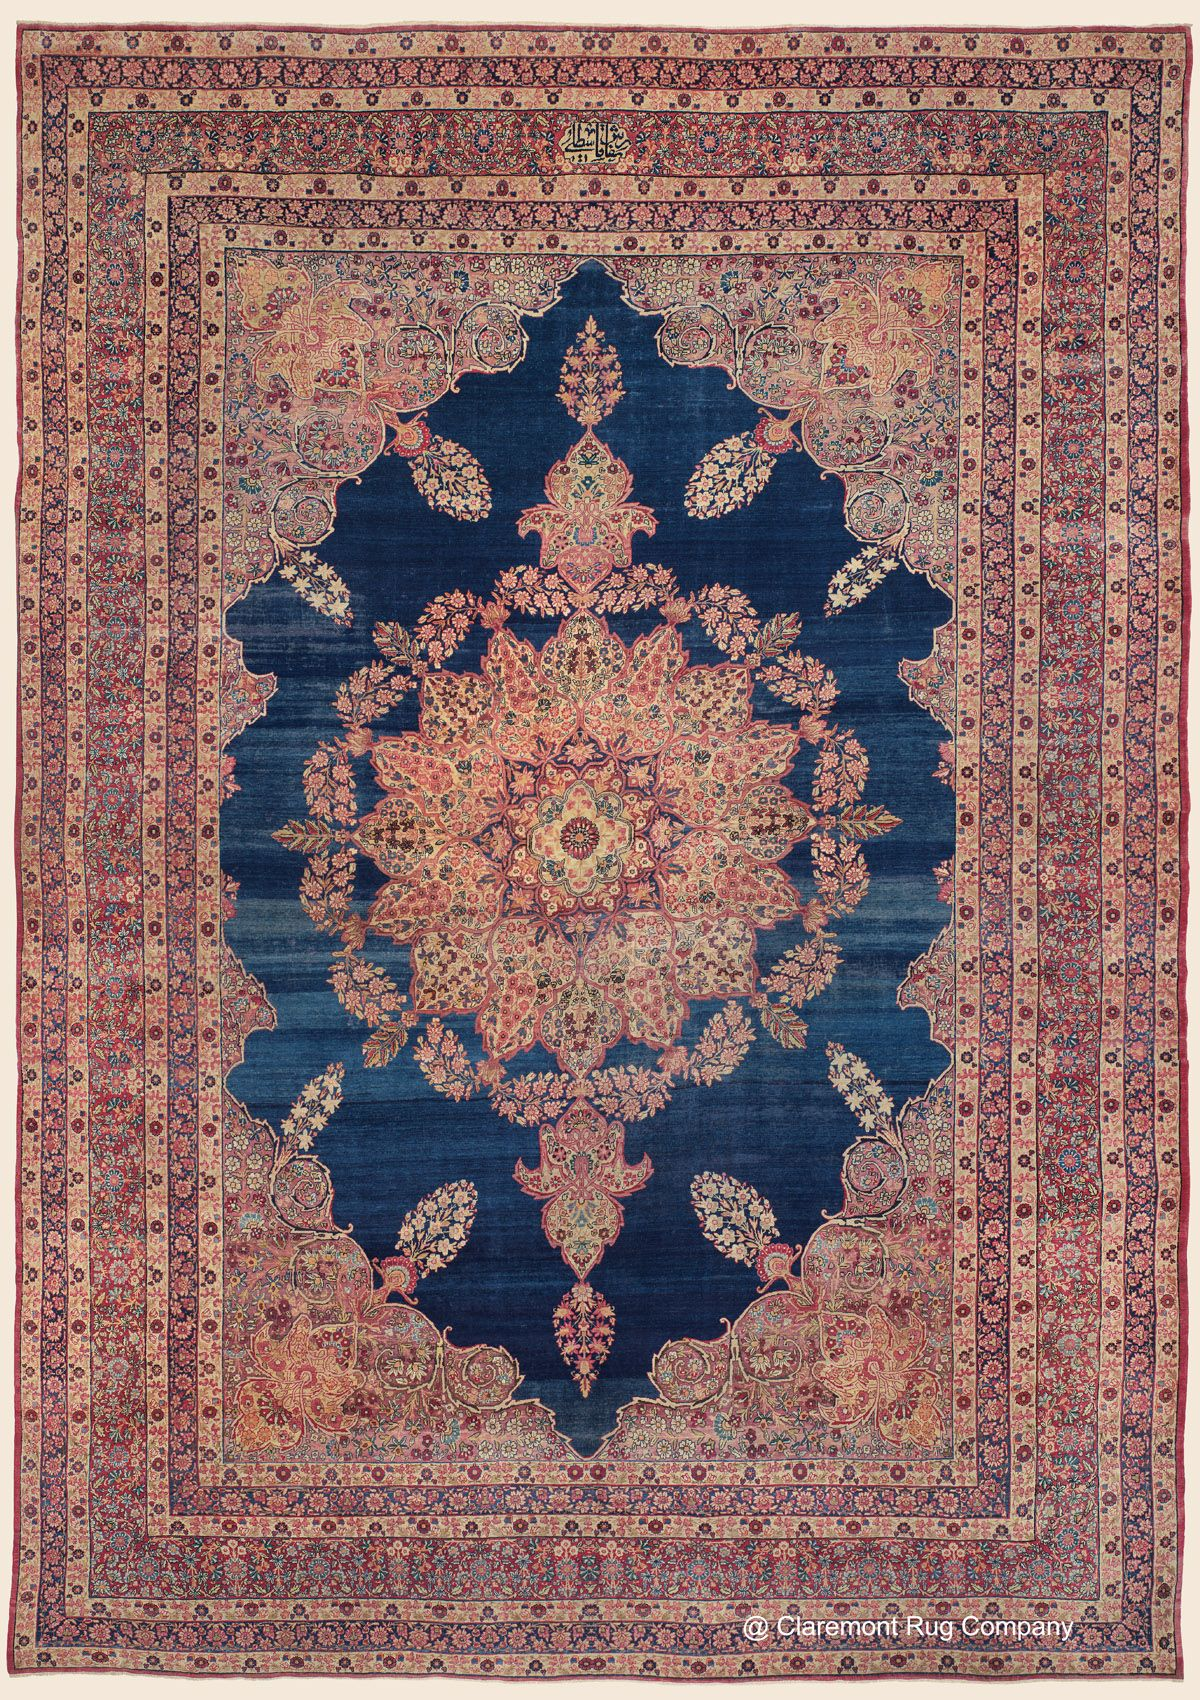 Laver Kirman Southeast Persian Antique Rug 11 8 X 16 9 Late 19th Century Claremont Rug Company Click To Lear Claremont Rug Company Rugs Rugs On Carpet